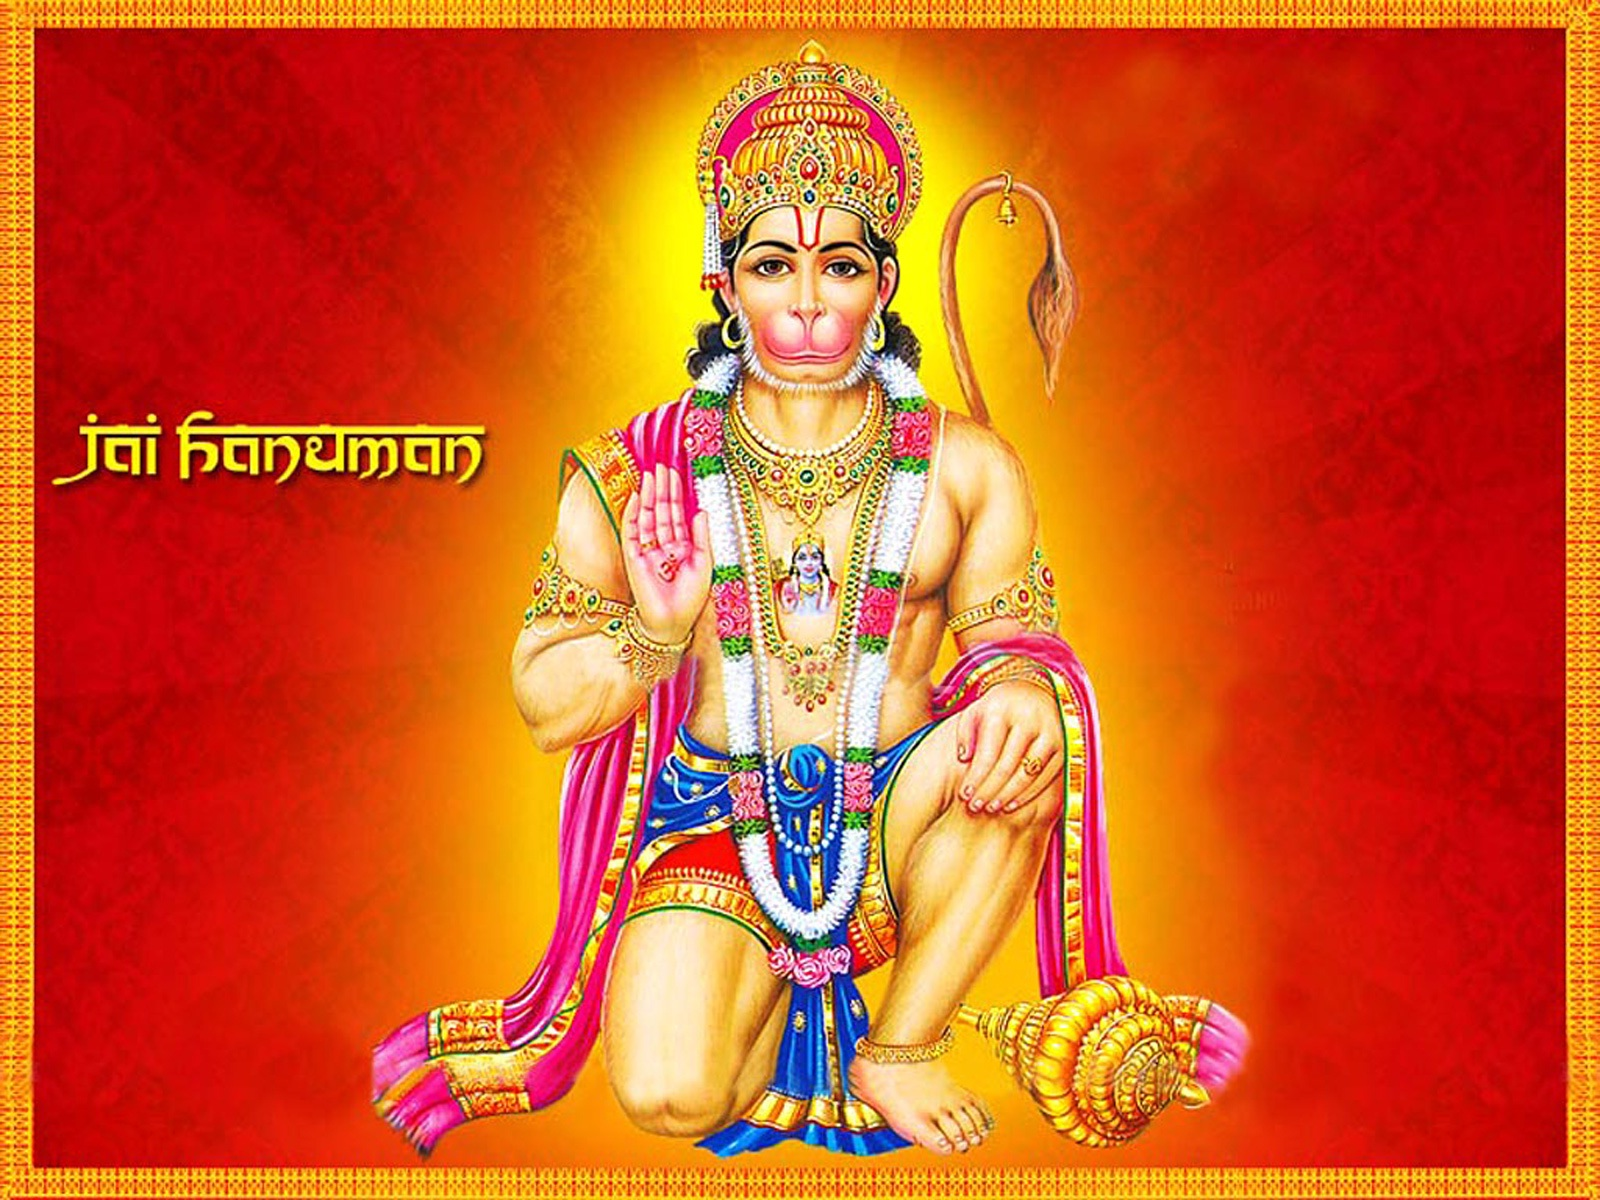 God Hanuman Ji Hanuman Images, HD Pho...